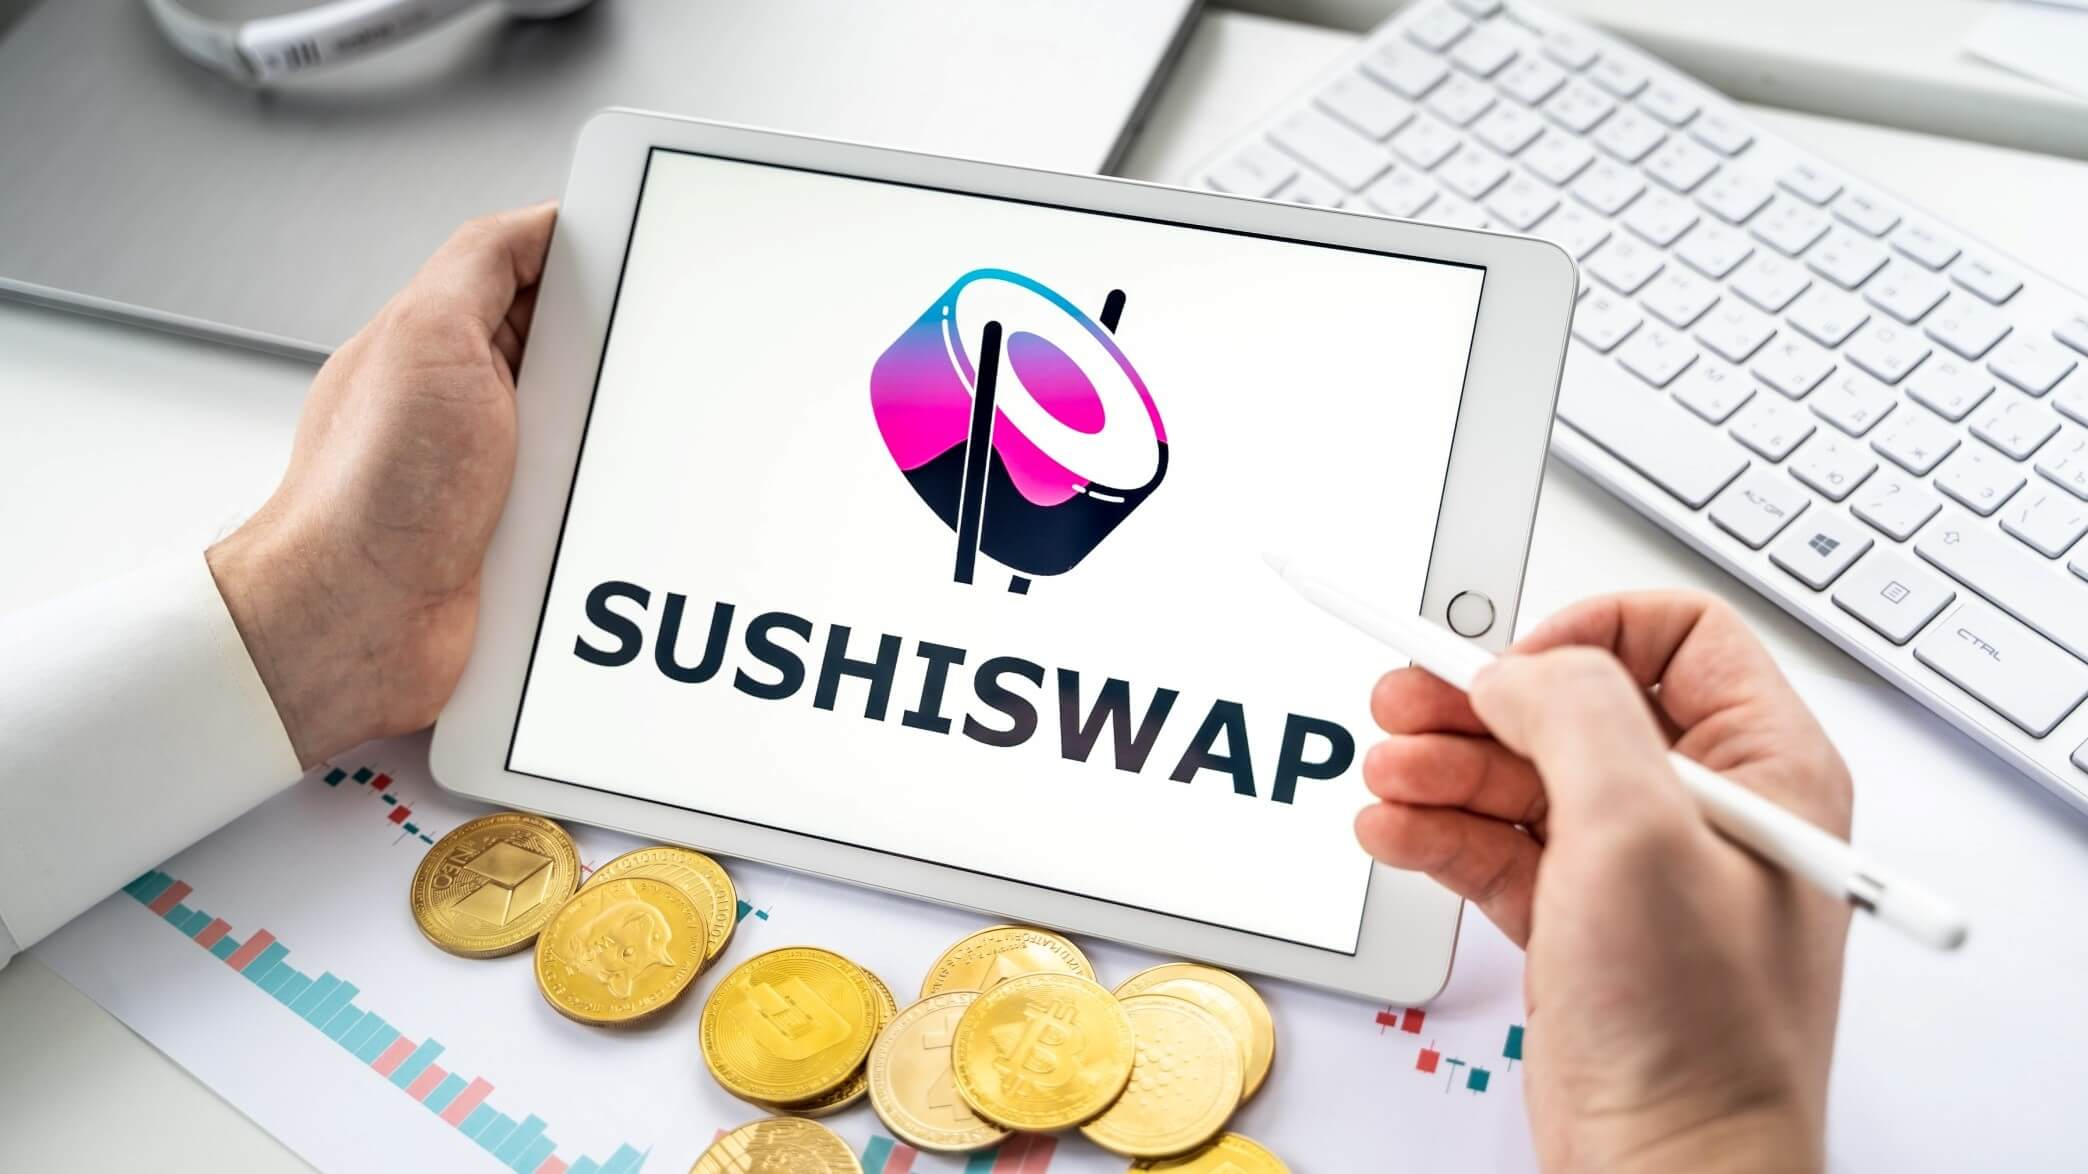 SUSHI is Fresh on the Coin Cloud Menu